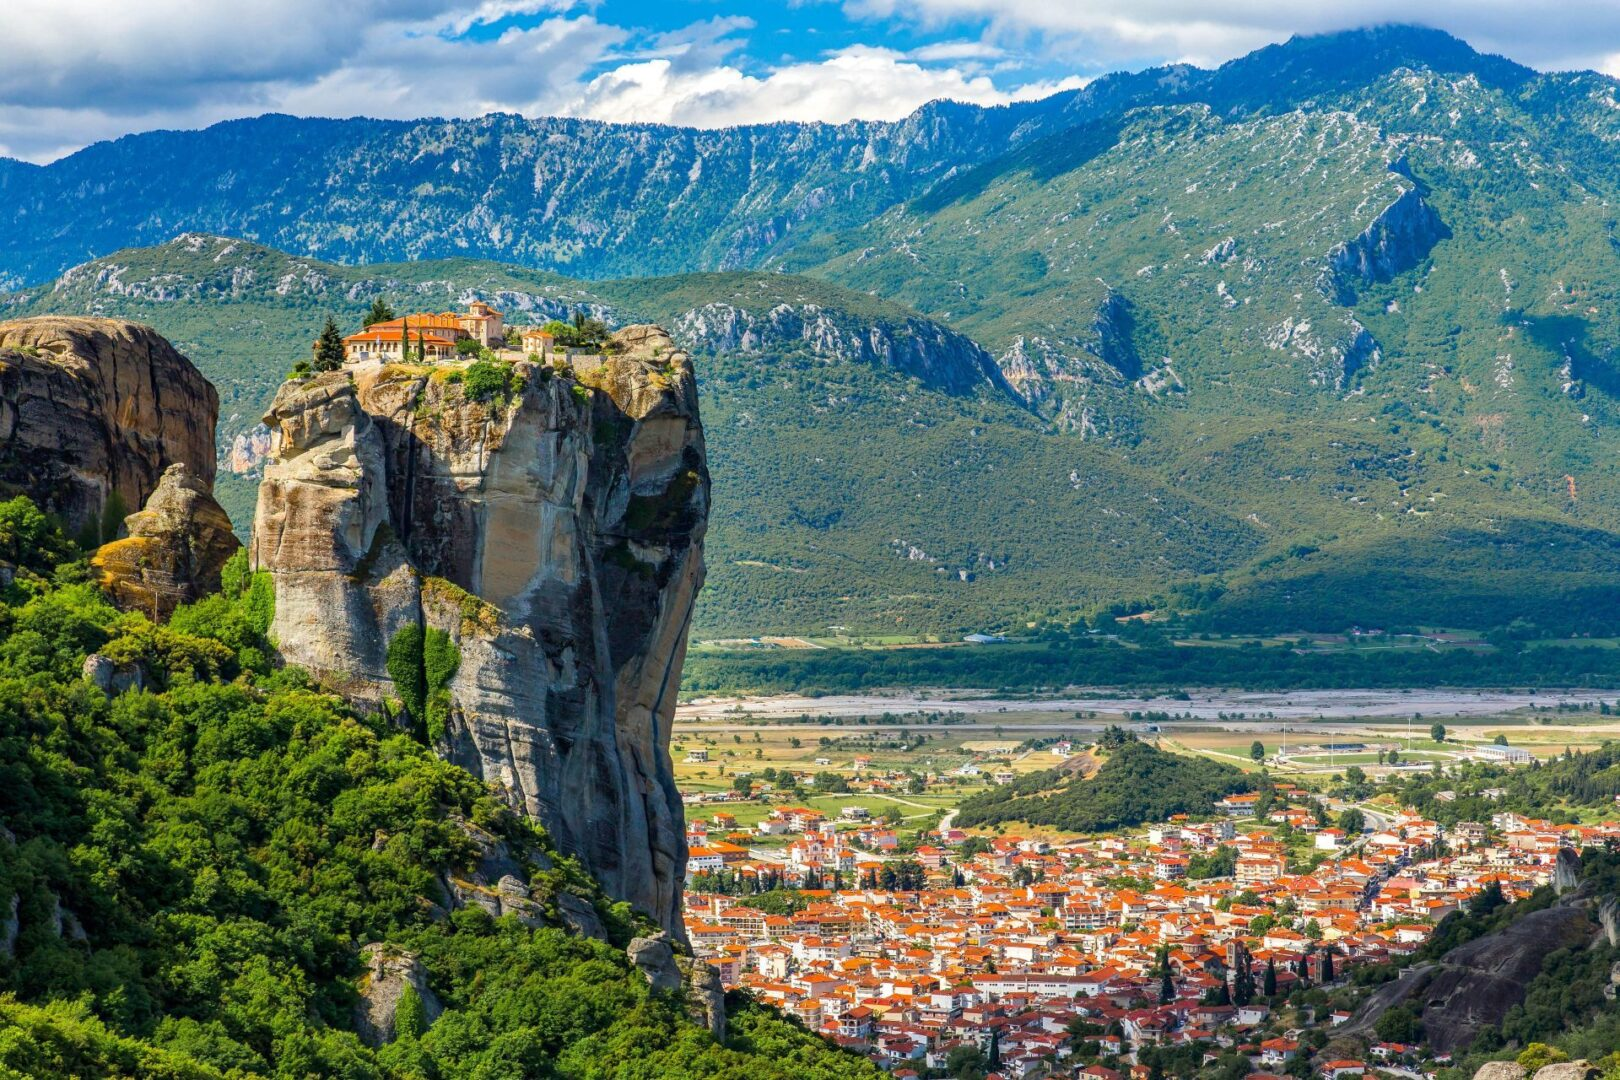 The monasteries of Meteora are located just outside the town of Kalabaka, Greece